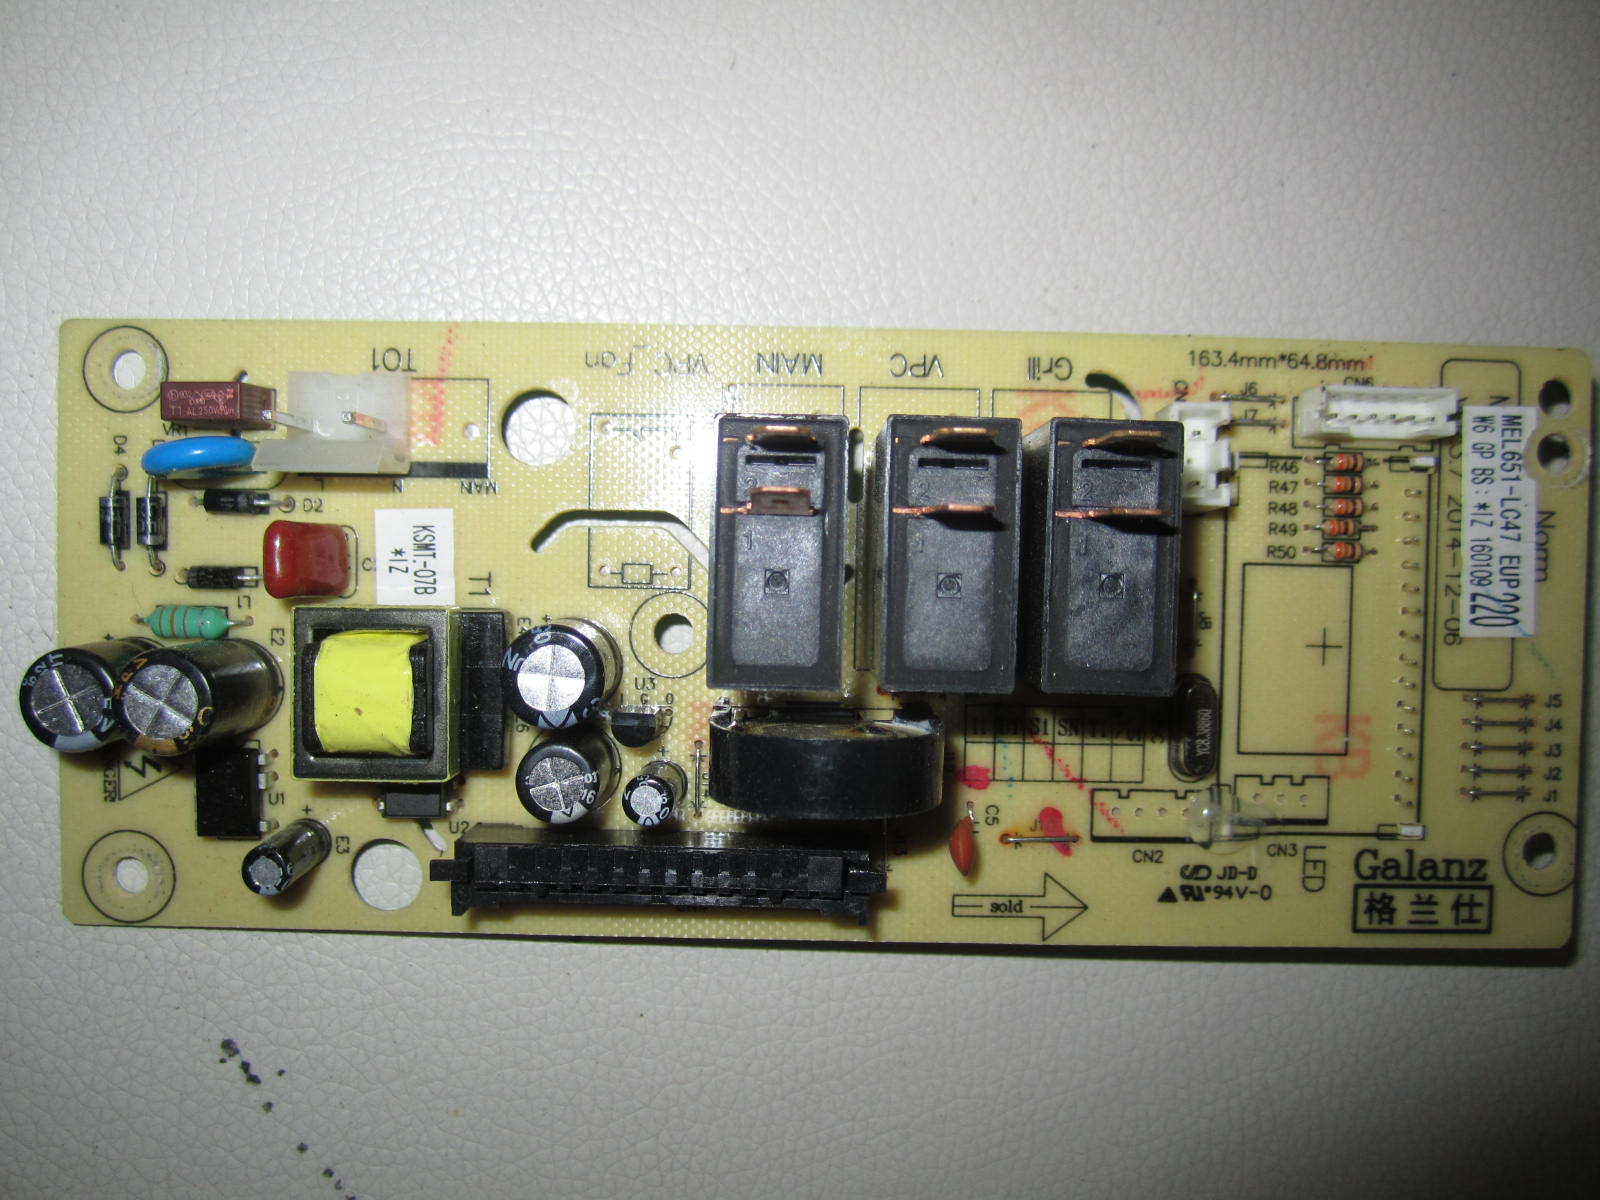 Usd 1423 Mel651 Lc47 Lc17 Lc6lc28 Galanz Microwave Oven Computer Circuit Board G70d20cn1p D2s0